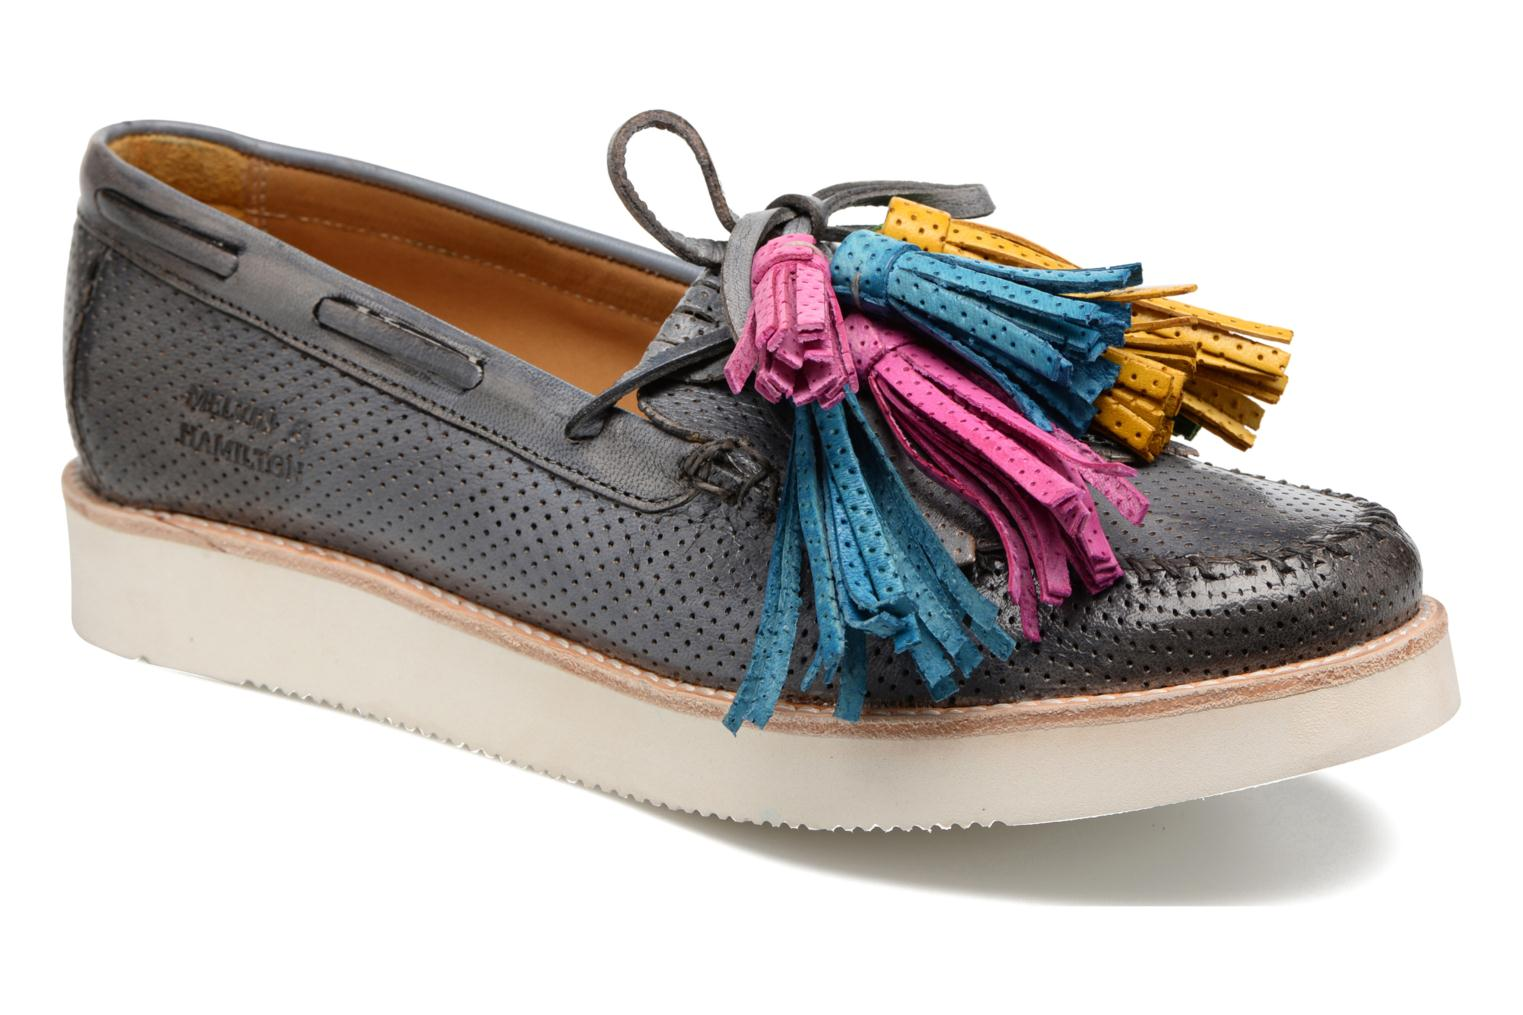 Bea 4 Venice Perfo Morning Grey Tassel Multi New Malden